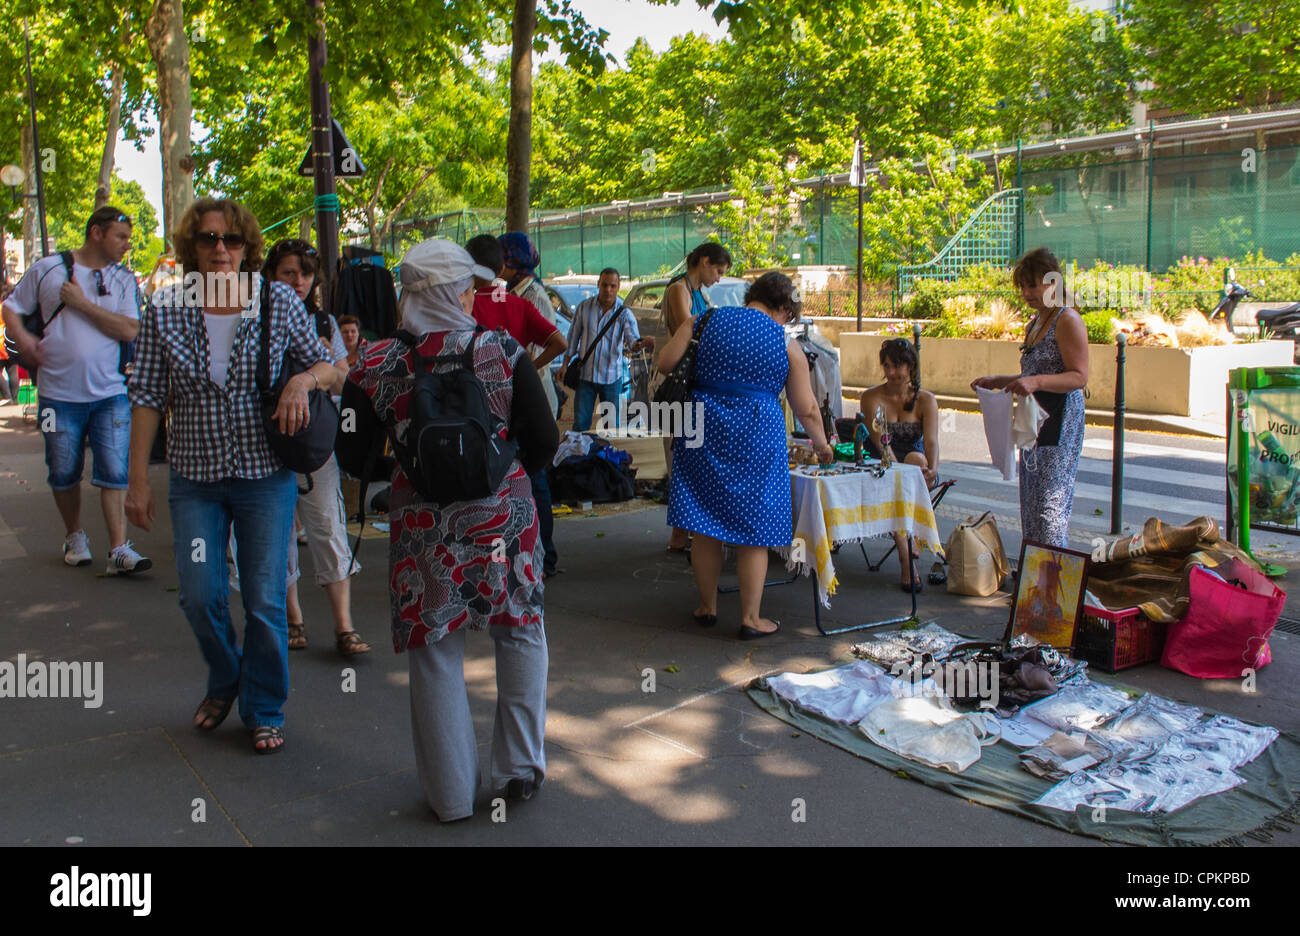 Brocante Cours De Vincennes Vide Grenier Paris Stock Photos Vide Grenier Paris Stock Images